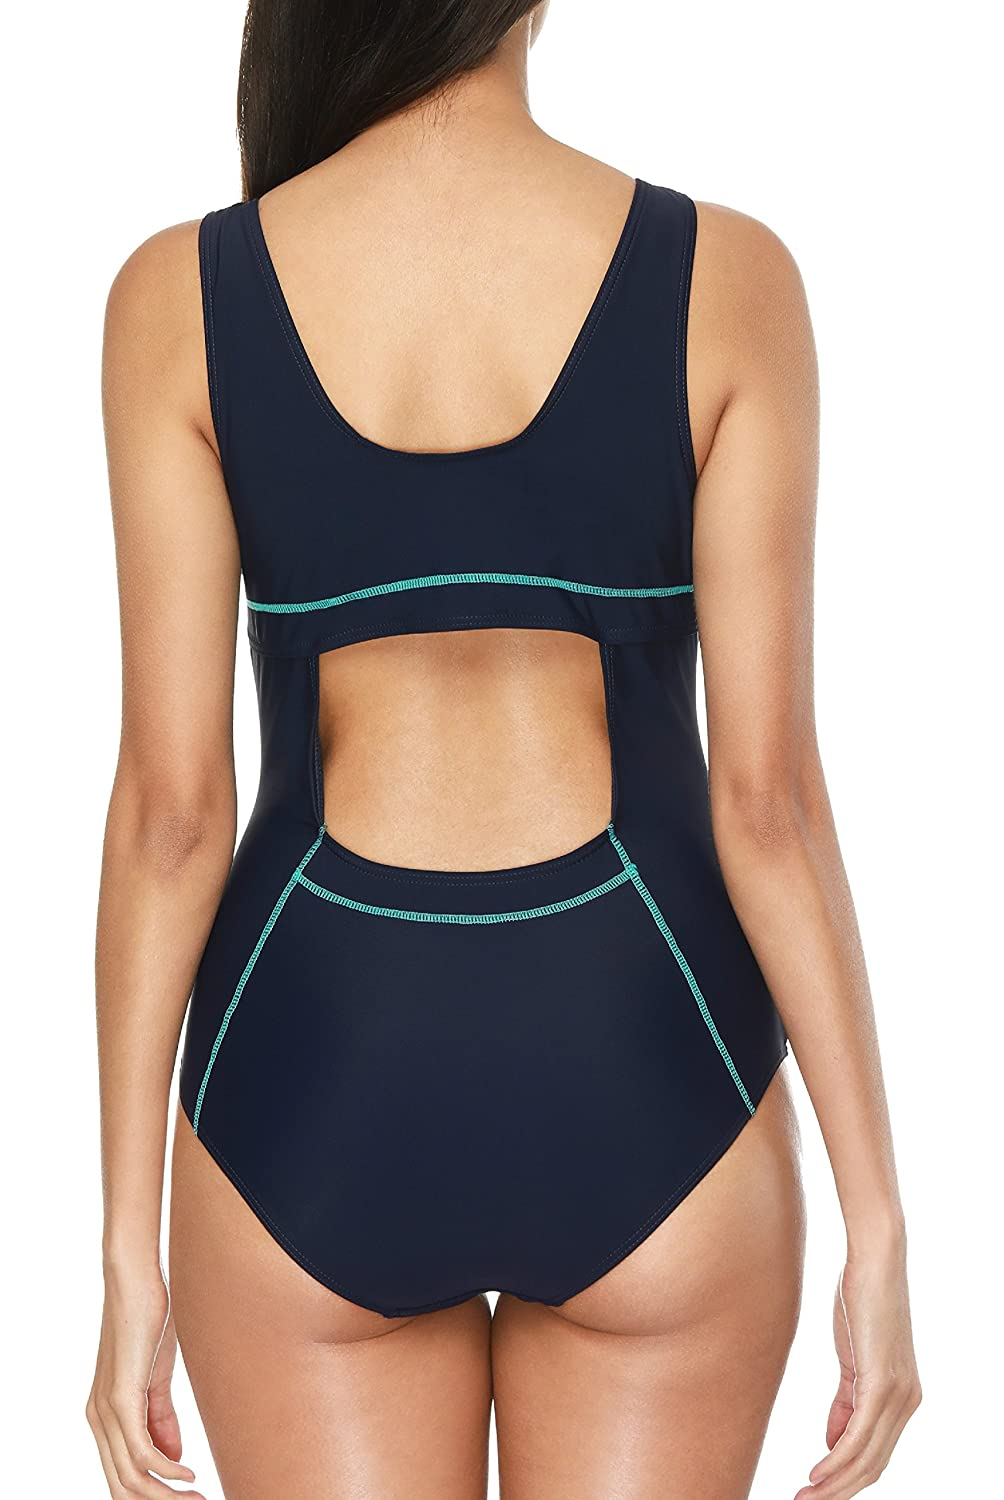 07d63891ad CharmLeaks Womens Sports One Piece Swimsuit Athletic Swimwear Swimming  Costumes